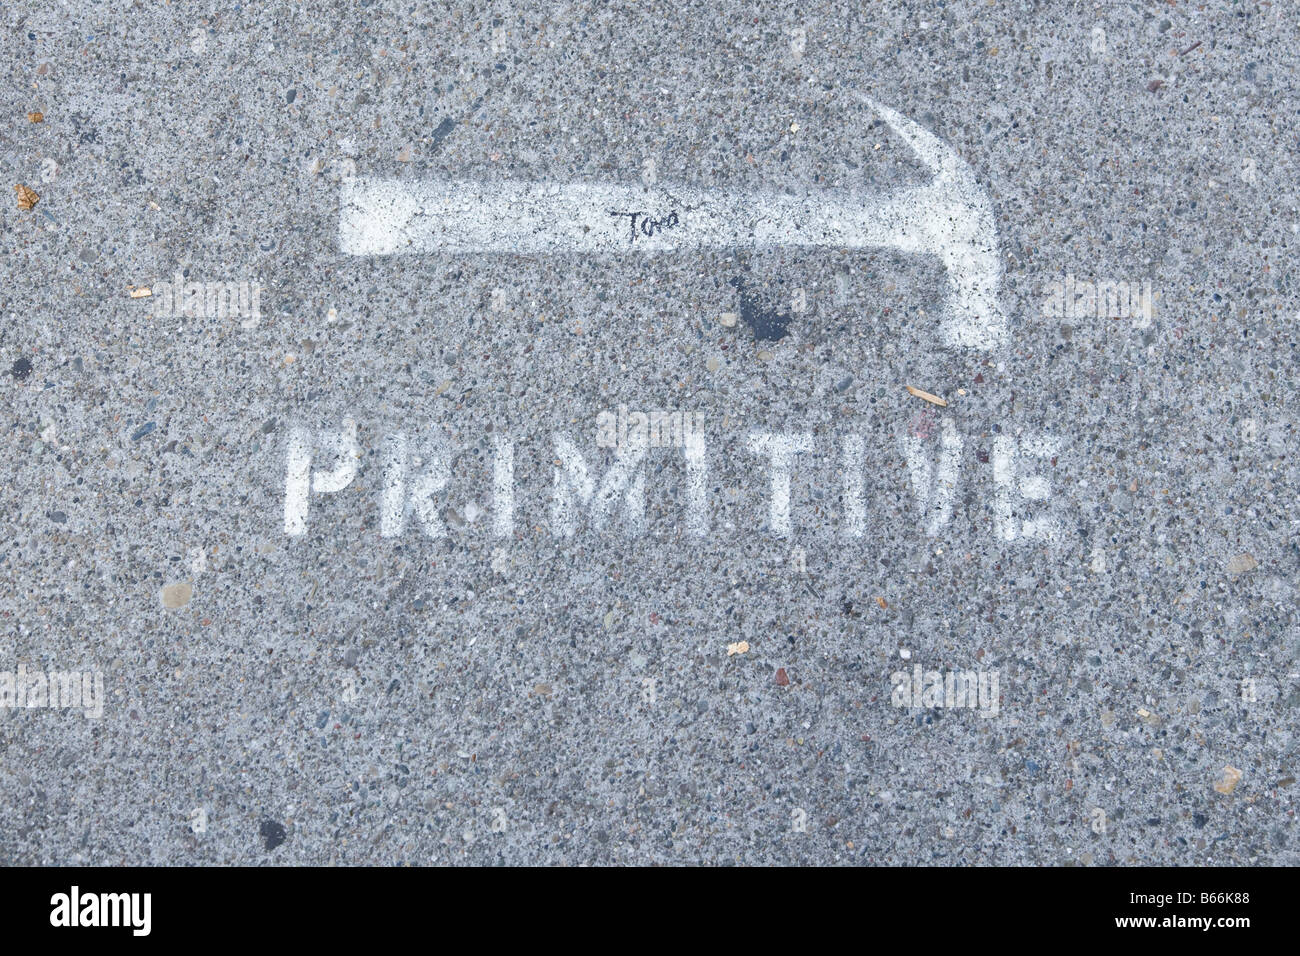 Graphically primitive - Stock Image